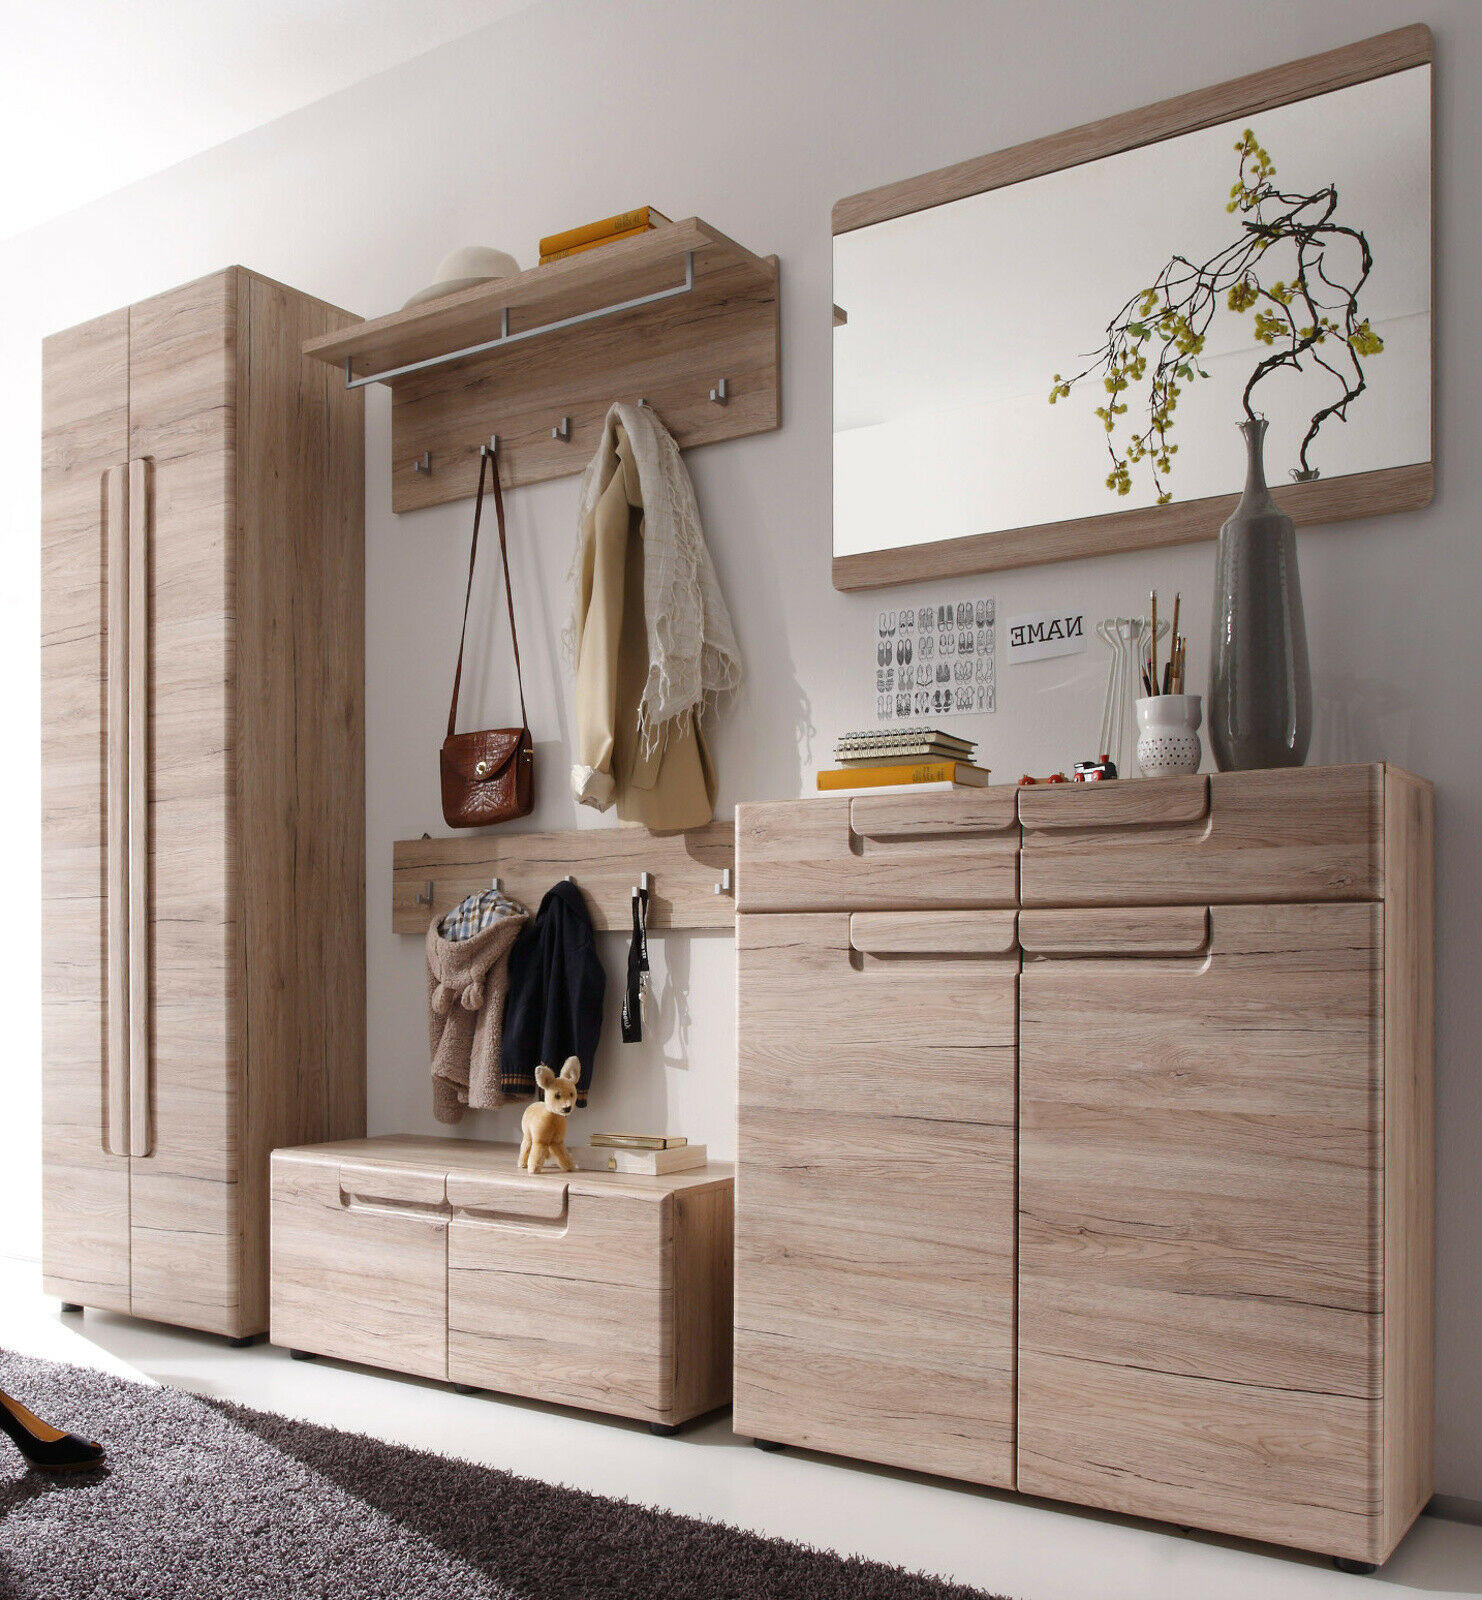 garderoben set flurgarderobe eiche san remo garderobenset mit bank schrank malea eur 679 99. Black Bedroom Furniture Sets. Home Design Ideas